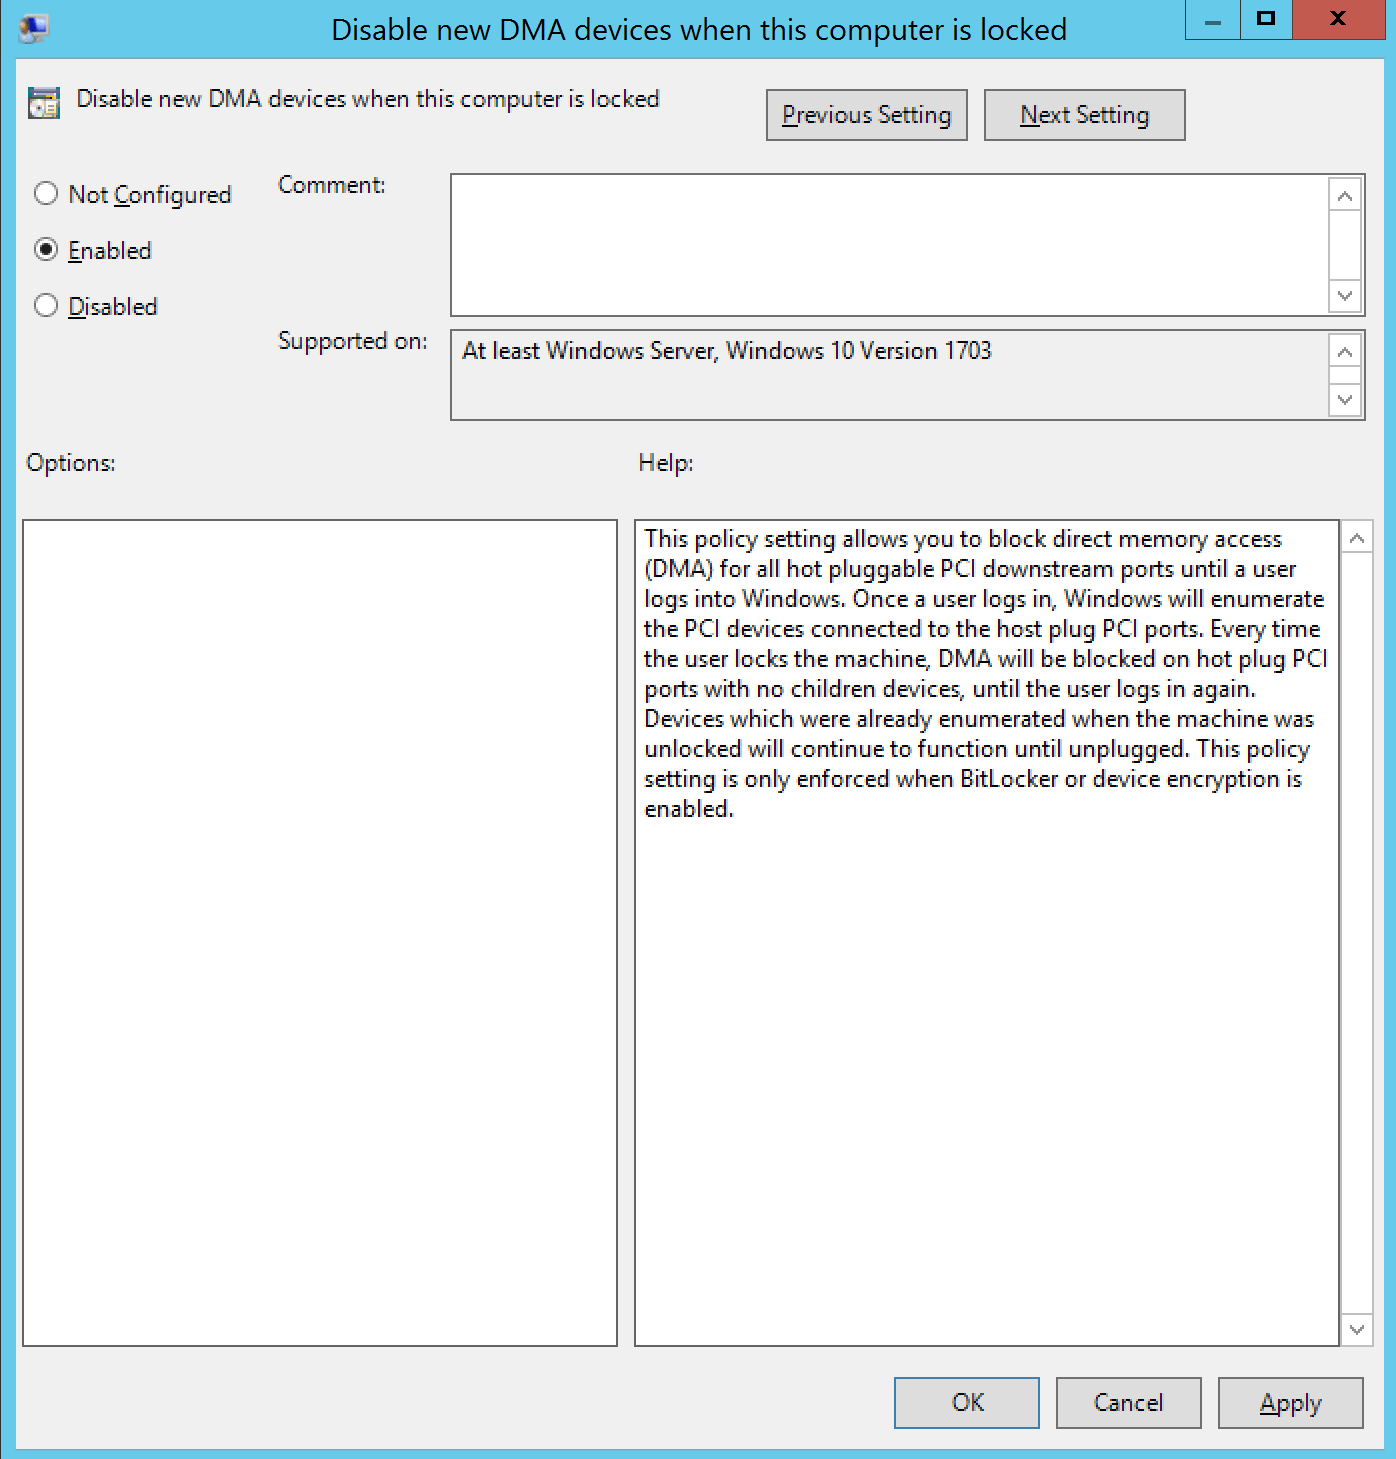 Disable new DMA devices